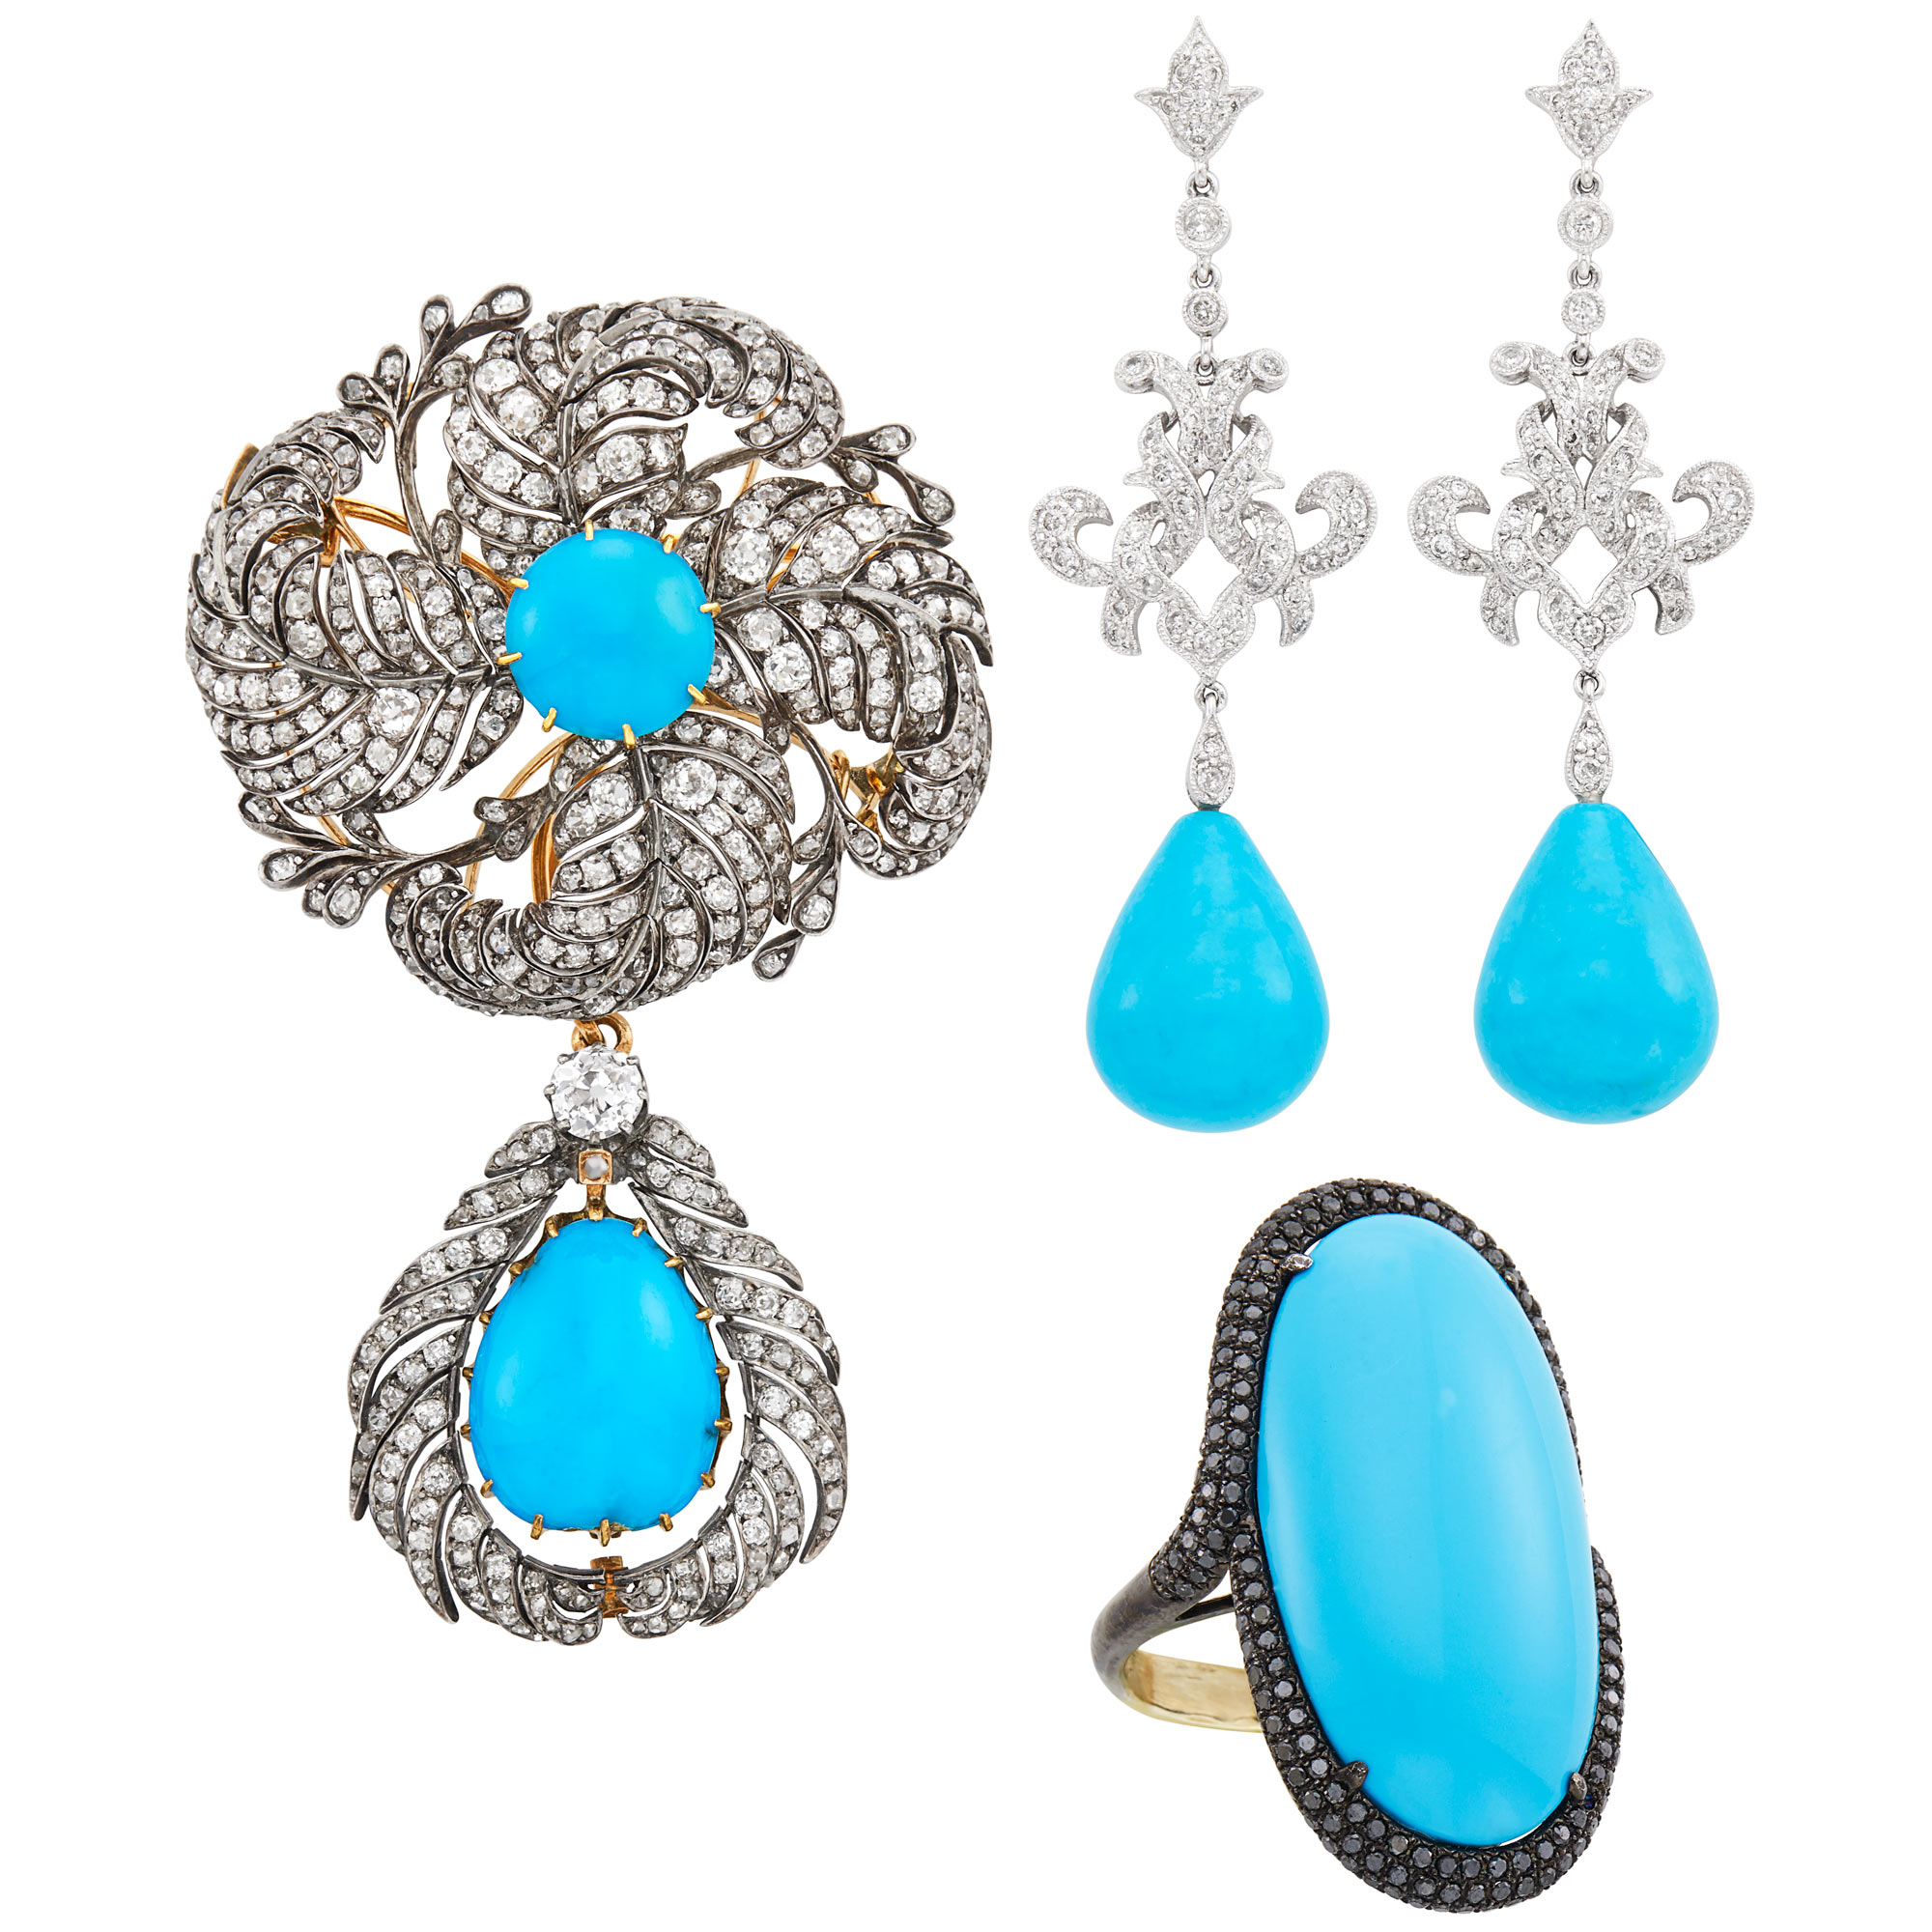 Lot image - Group of Silver, White and Blackened Gold, Reconstituted Turquoise, Diamond and Black Diamond Jewelry